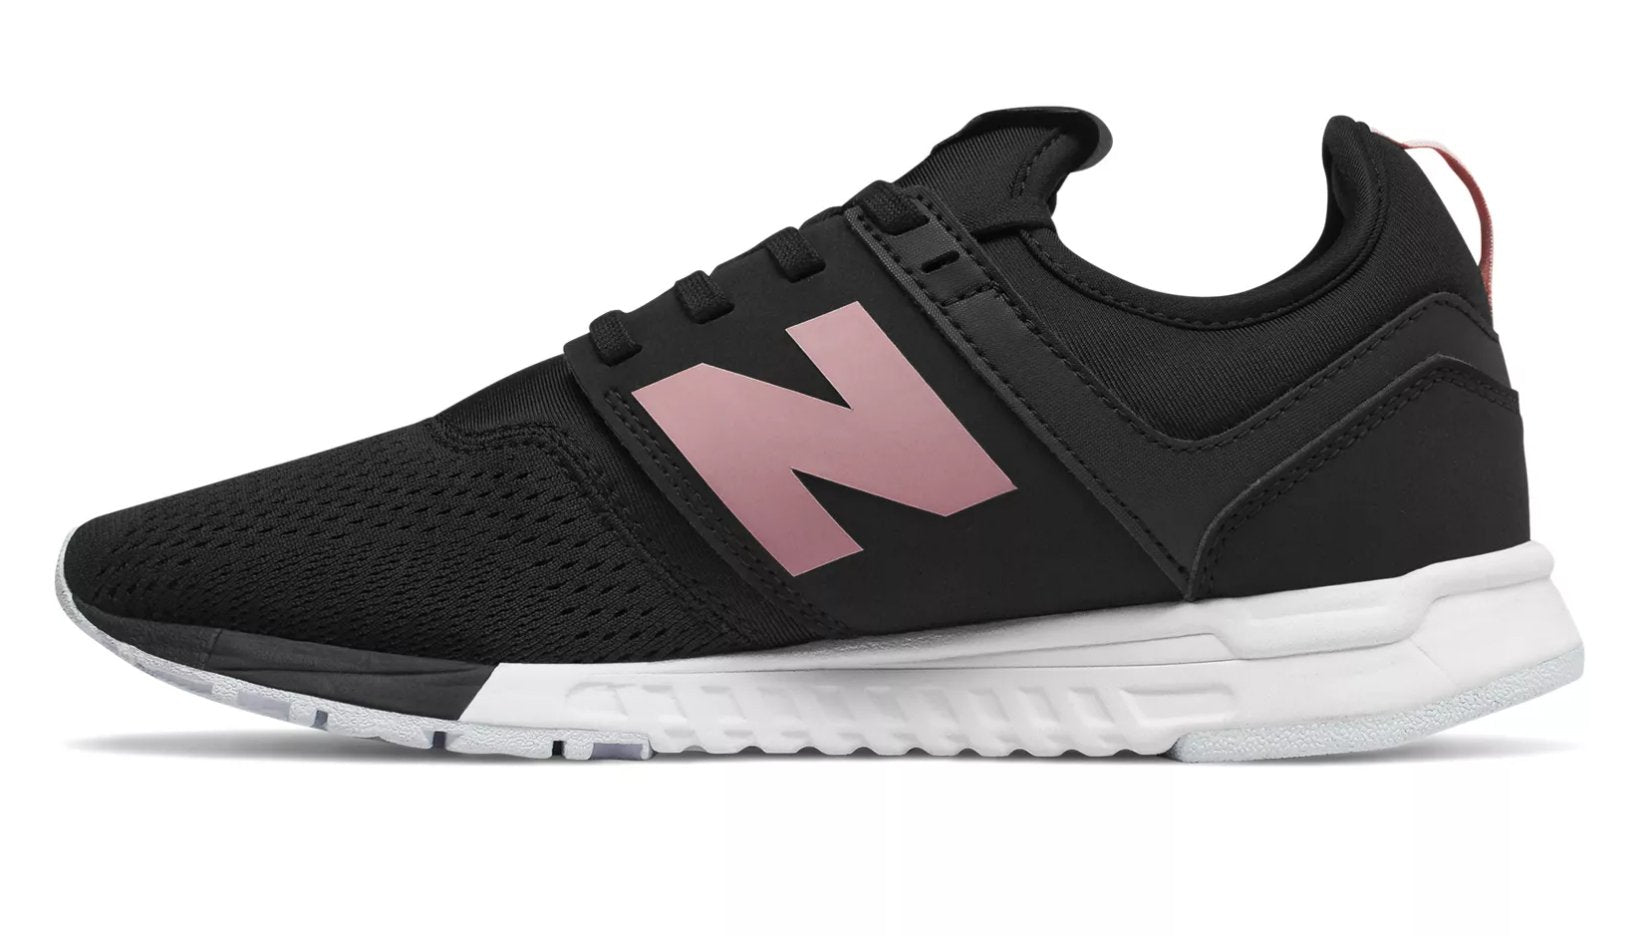 NEW BALANCE Sporty Chic Shoe in Canada